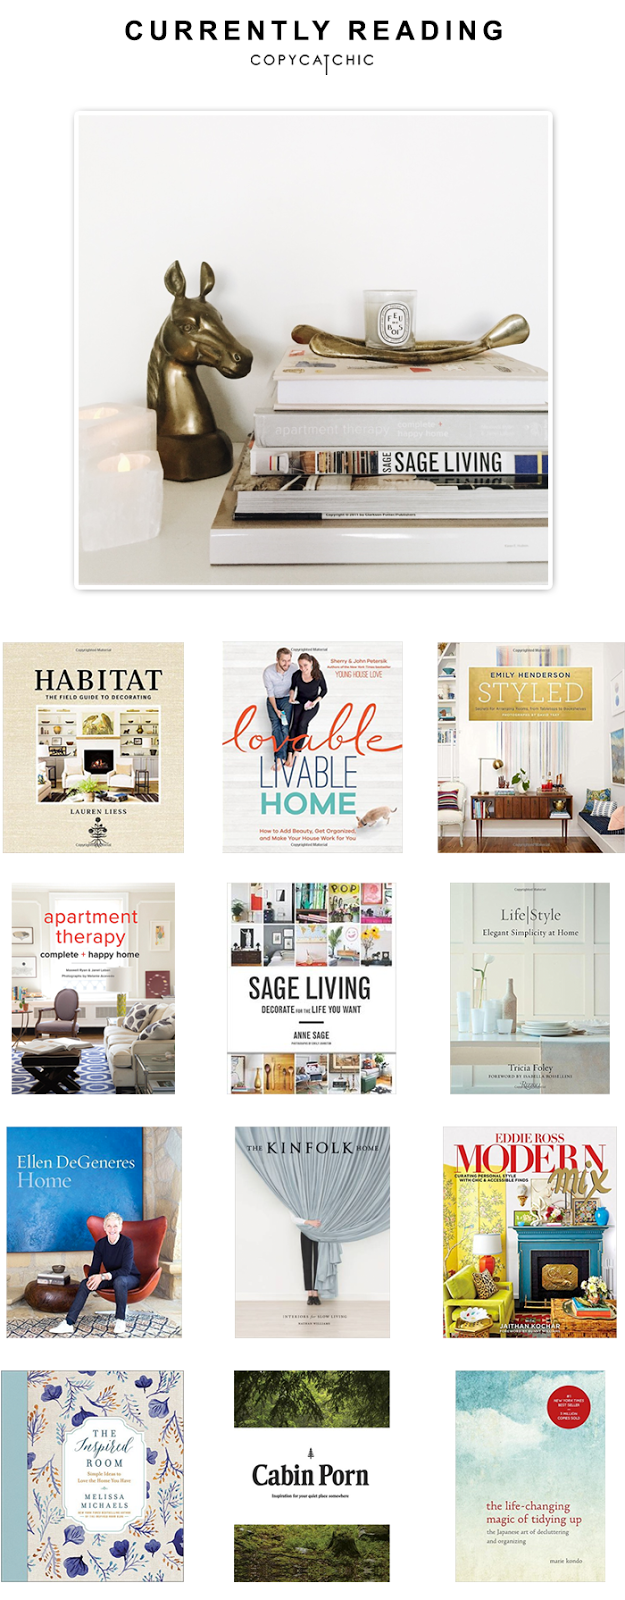 The Copy Cat Chic Must Have List Of Newly Released Home Decor Interior Design Books